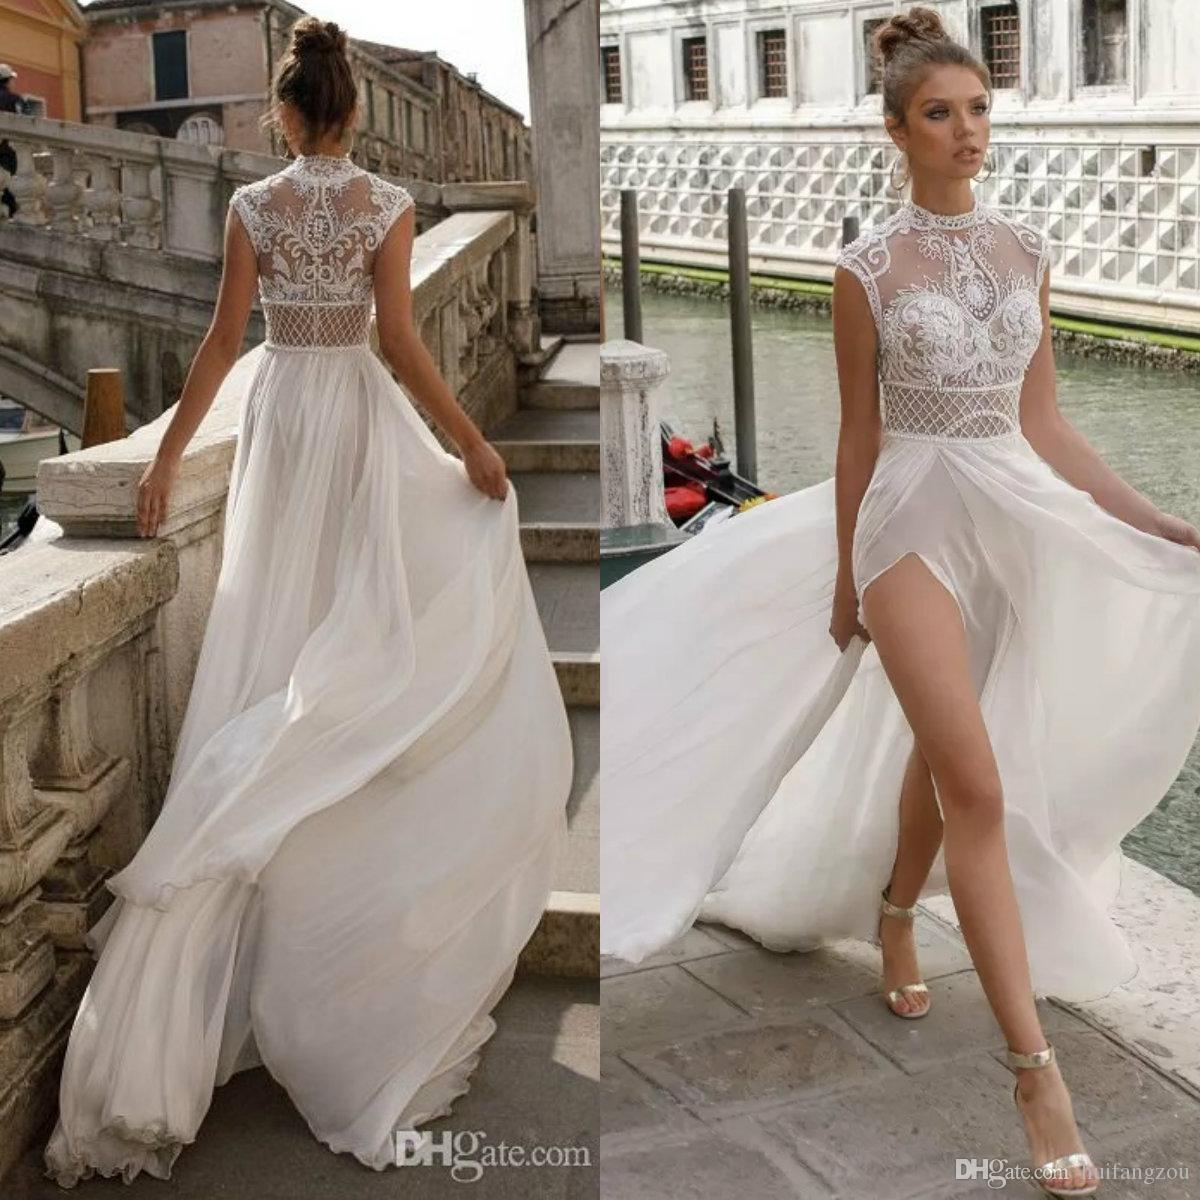 32095a131cbf Discount Julie Vino Beach Wedding Dresses A Line Sexy High Split Cheap Deep  V Neck Illusion Lace Applique Bohemian Bridal Gowns Robe De Mariée One  Shoulder ...